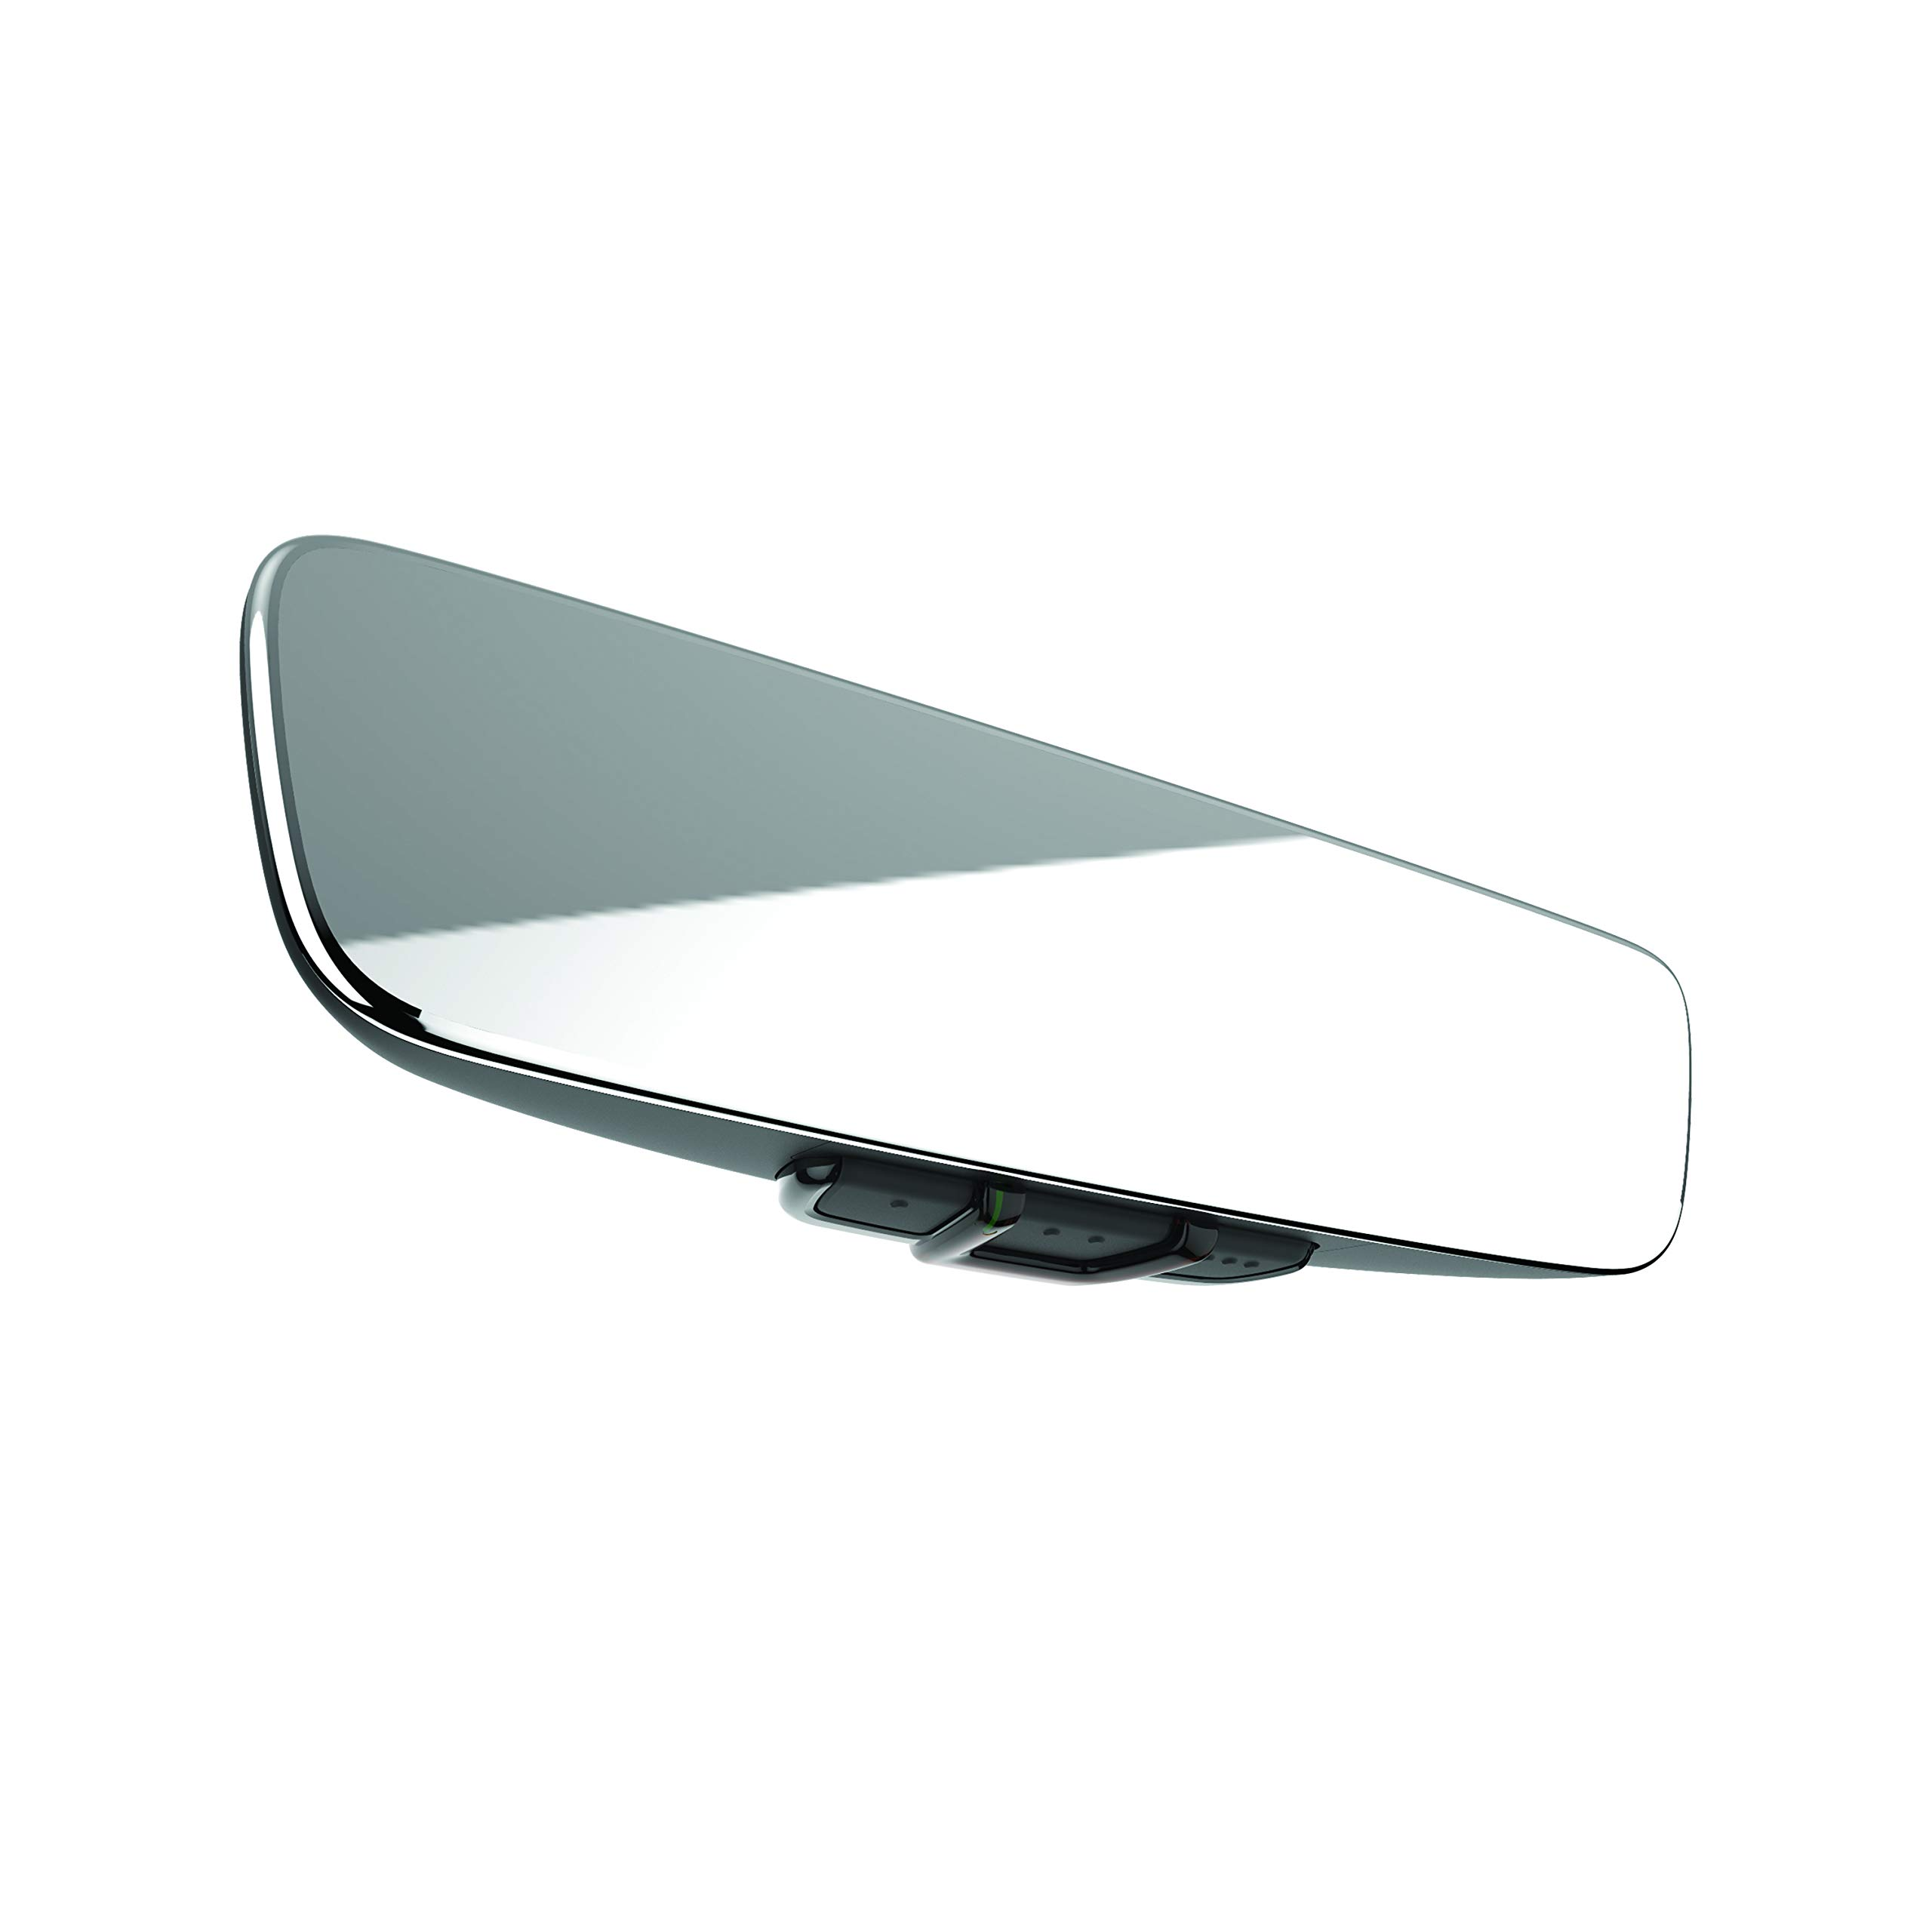 Brandmotion 1110-2520 Frameless Manual Dim Rear View Mirror with Universal Remote Control by Brandmotion (Image #1)